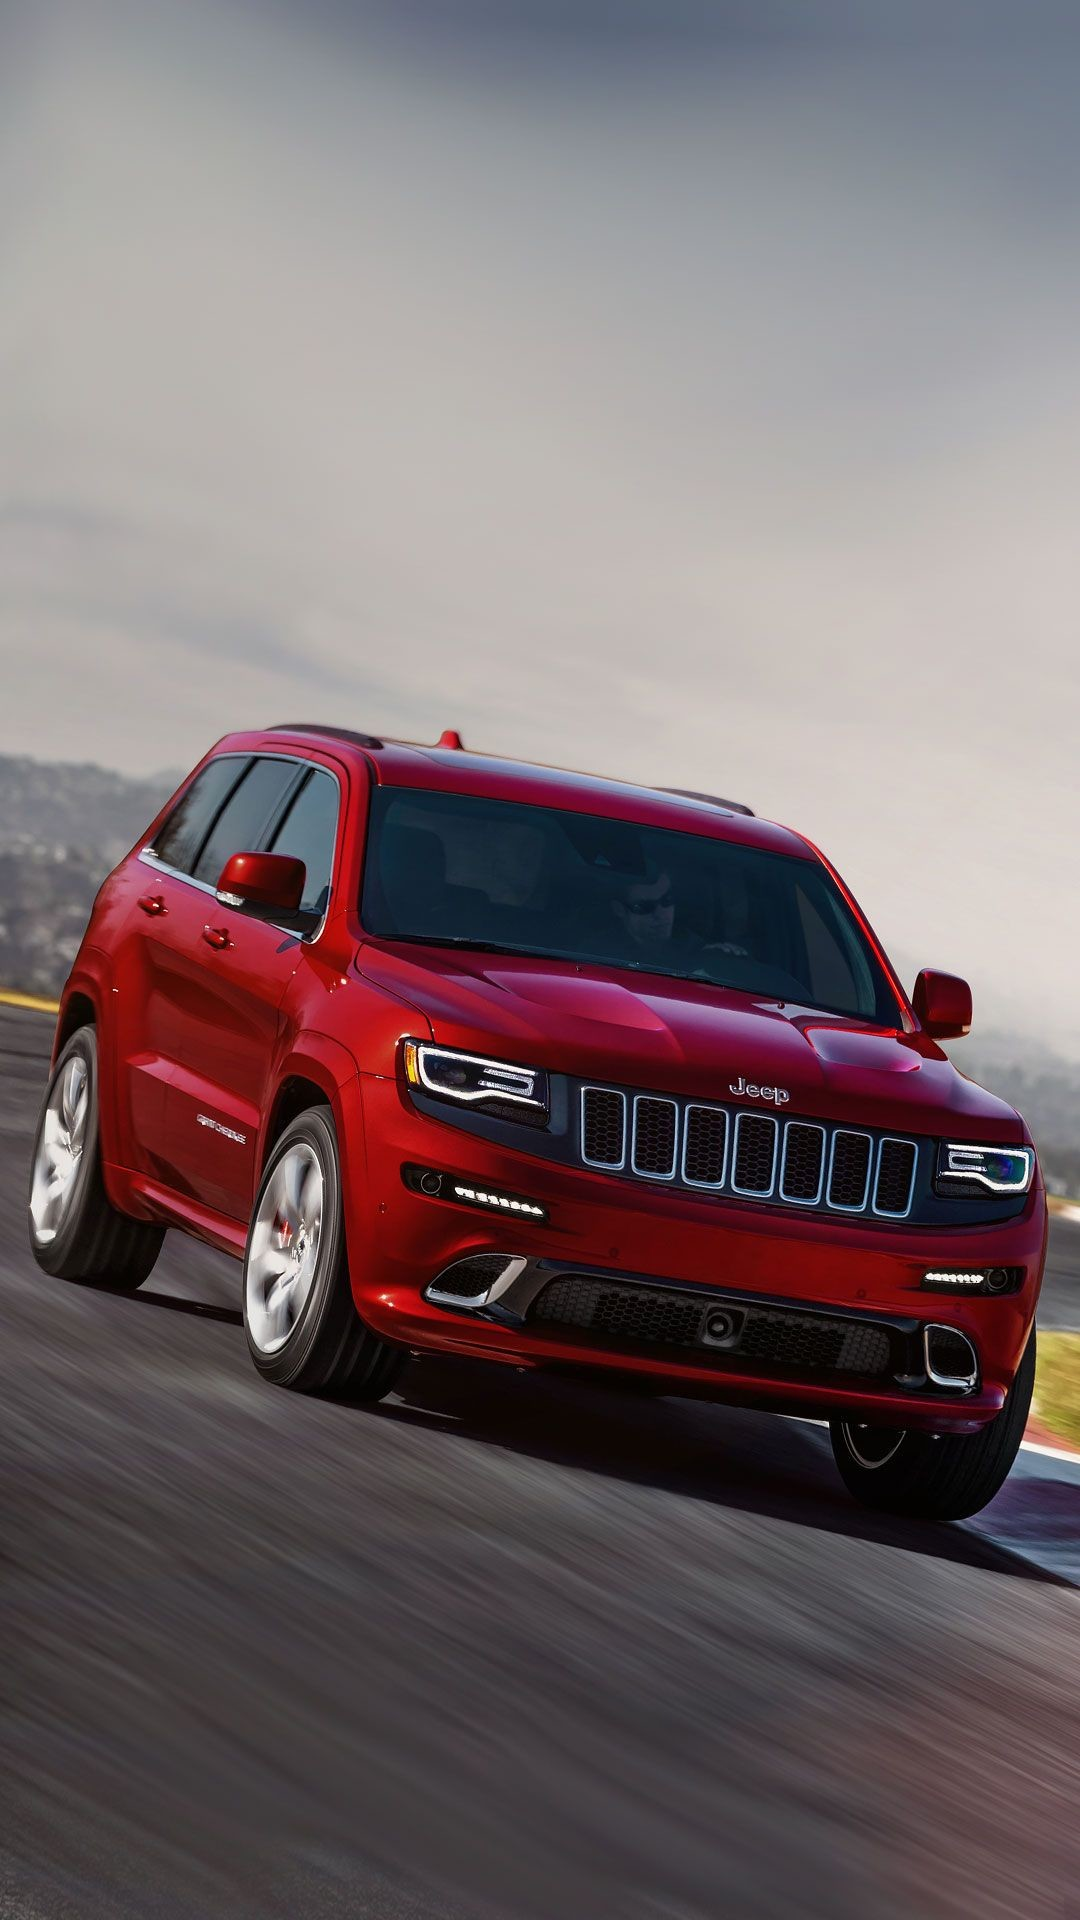 Res: 1080x1920, 2017 Jeep Grand Cherokee Wallpaper iPhone 6 Plus